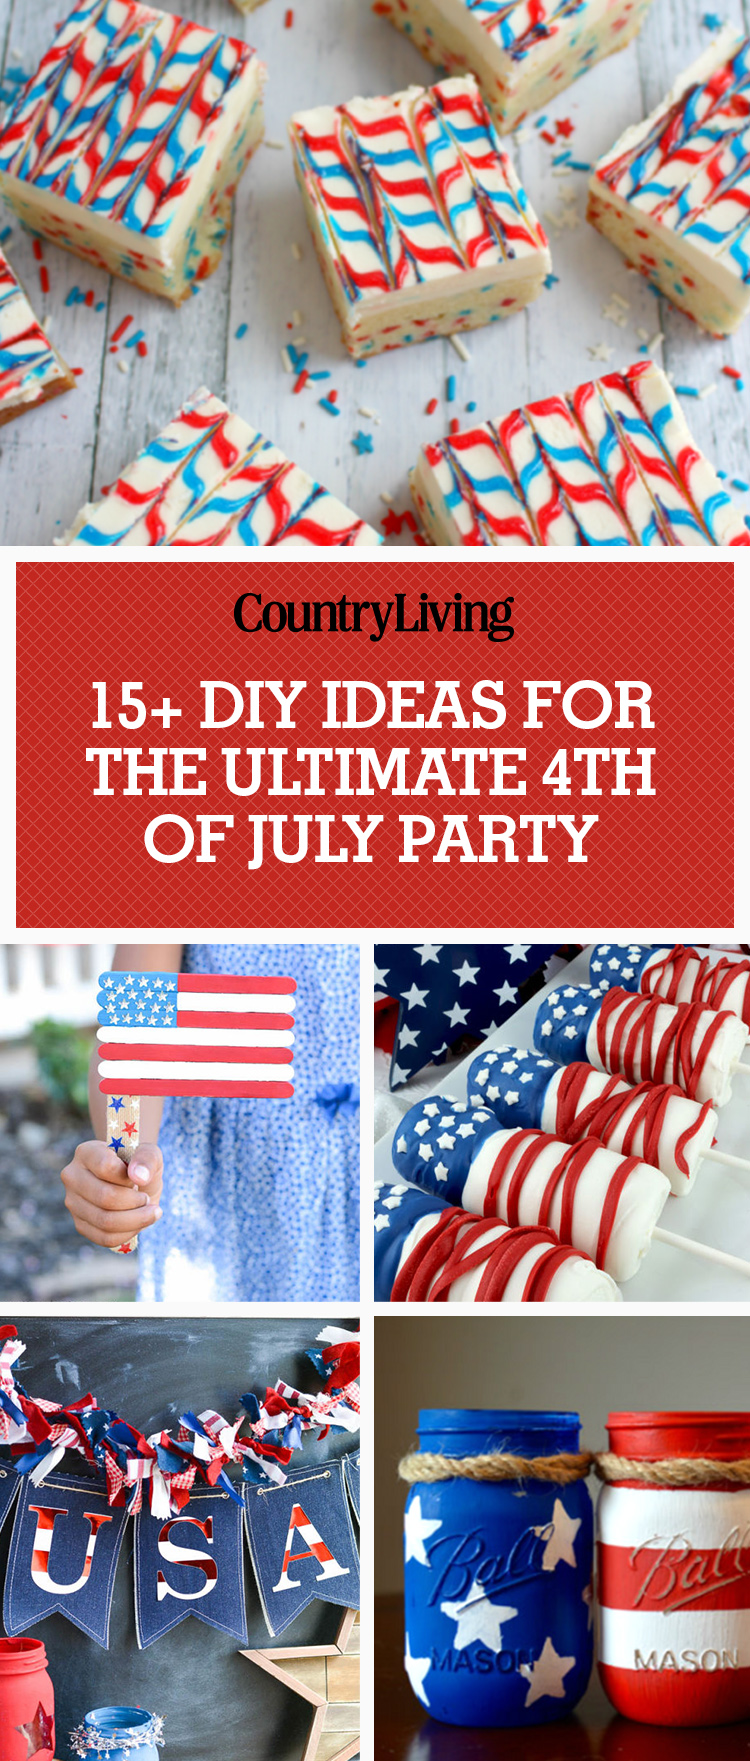 16 best 4th of july party ideas games diy decor for a fourth of july cookout. Black Bedroom Furniture Sets. Home Design Ideas